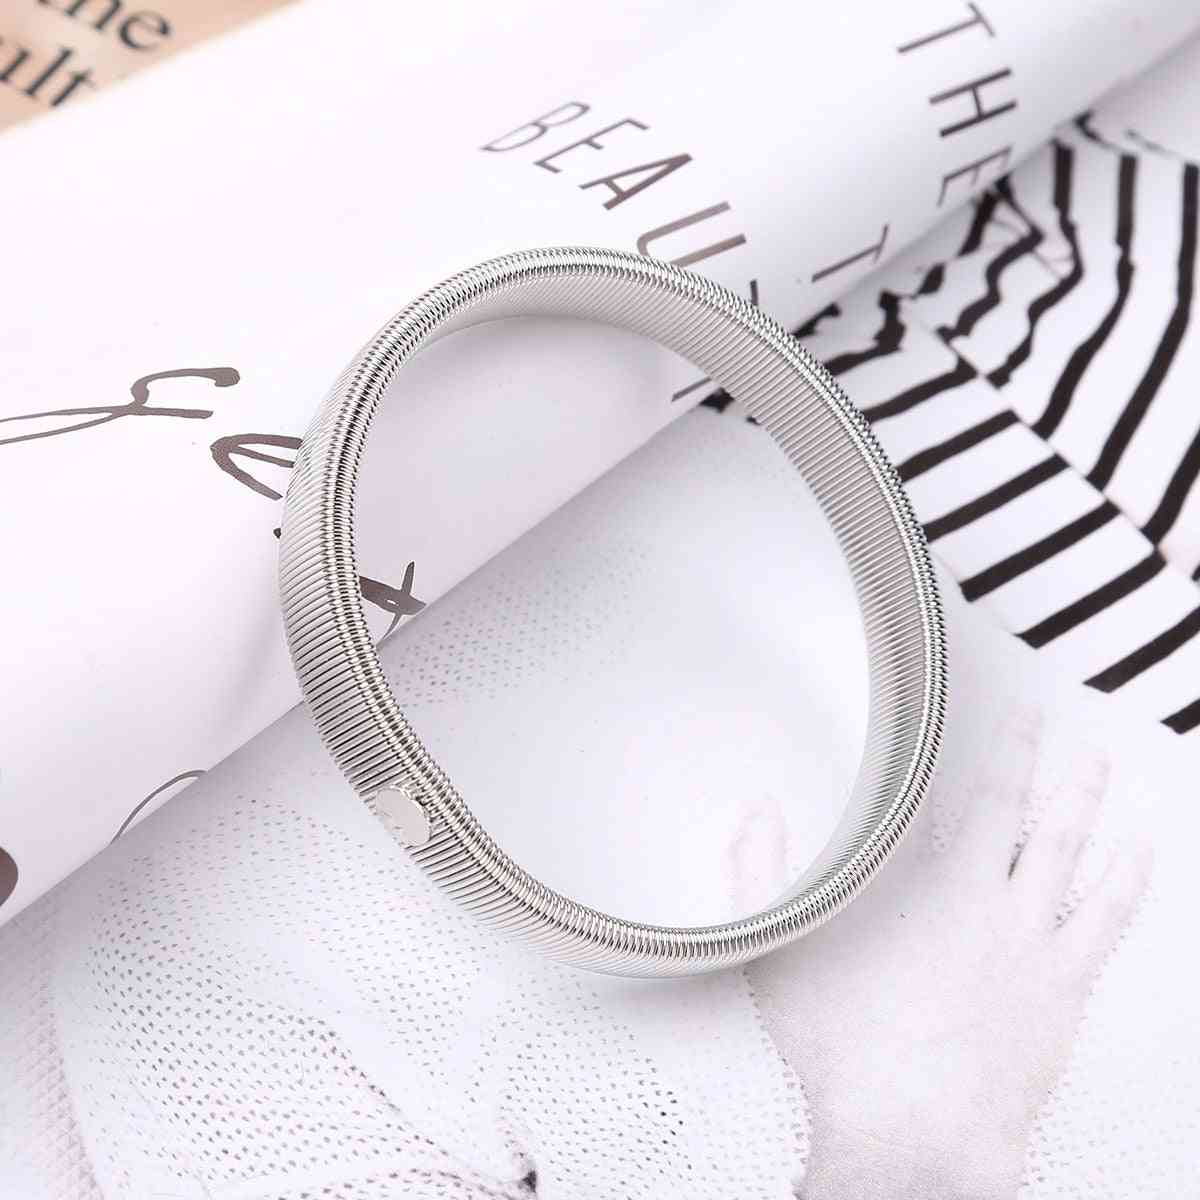 Anti-slip Shirt Sleeve Holders Stretchy Steel Wire Metal Armbands